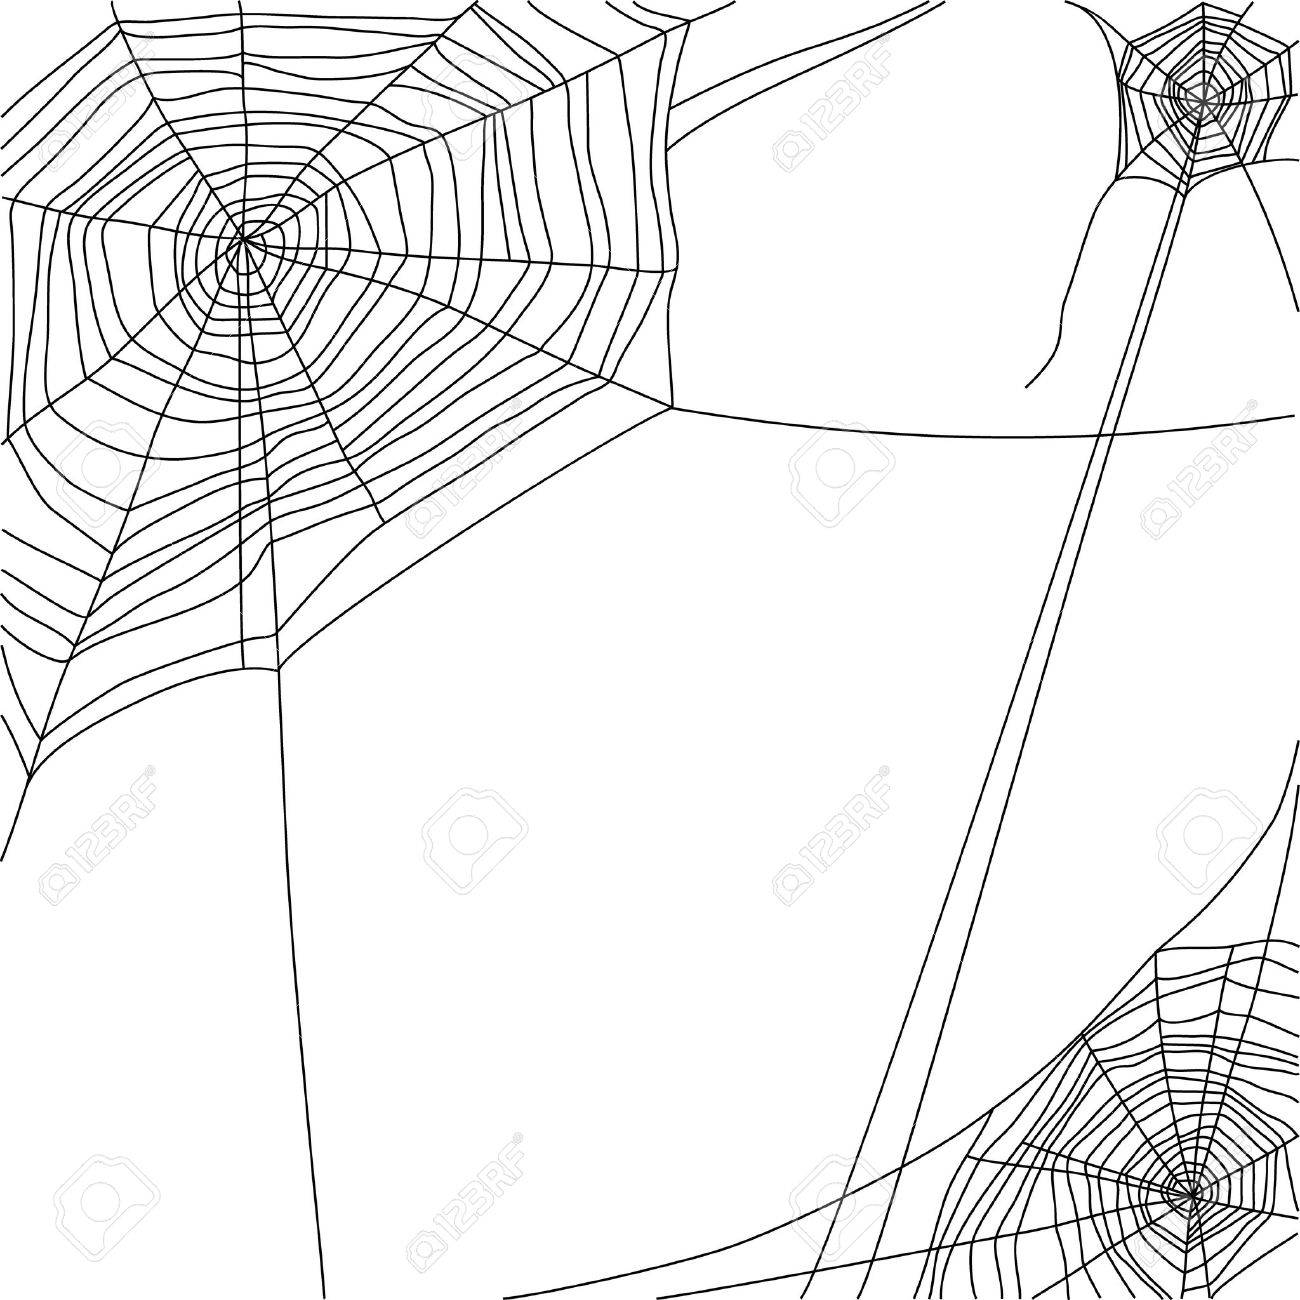 spider web on white background Stock Vector - 20544744